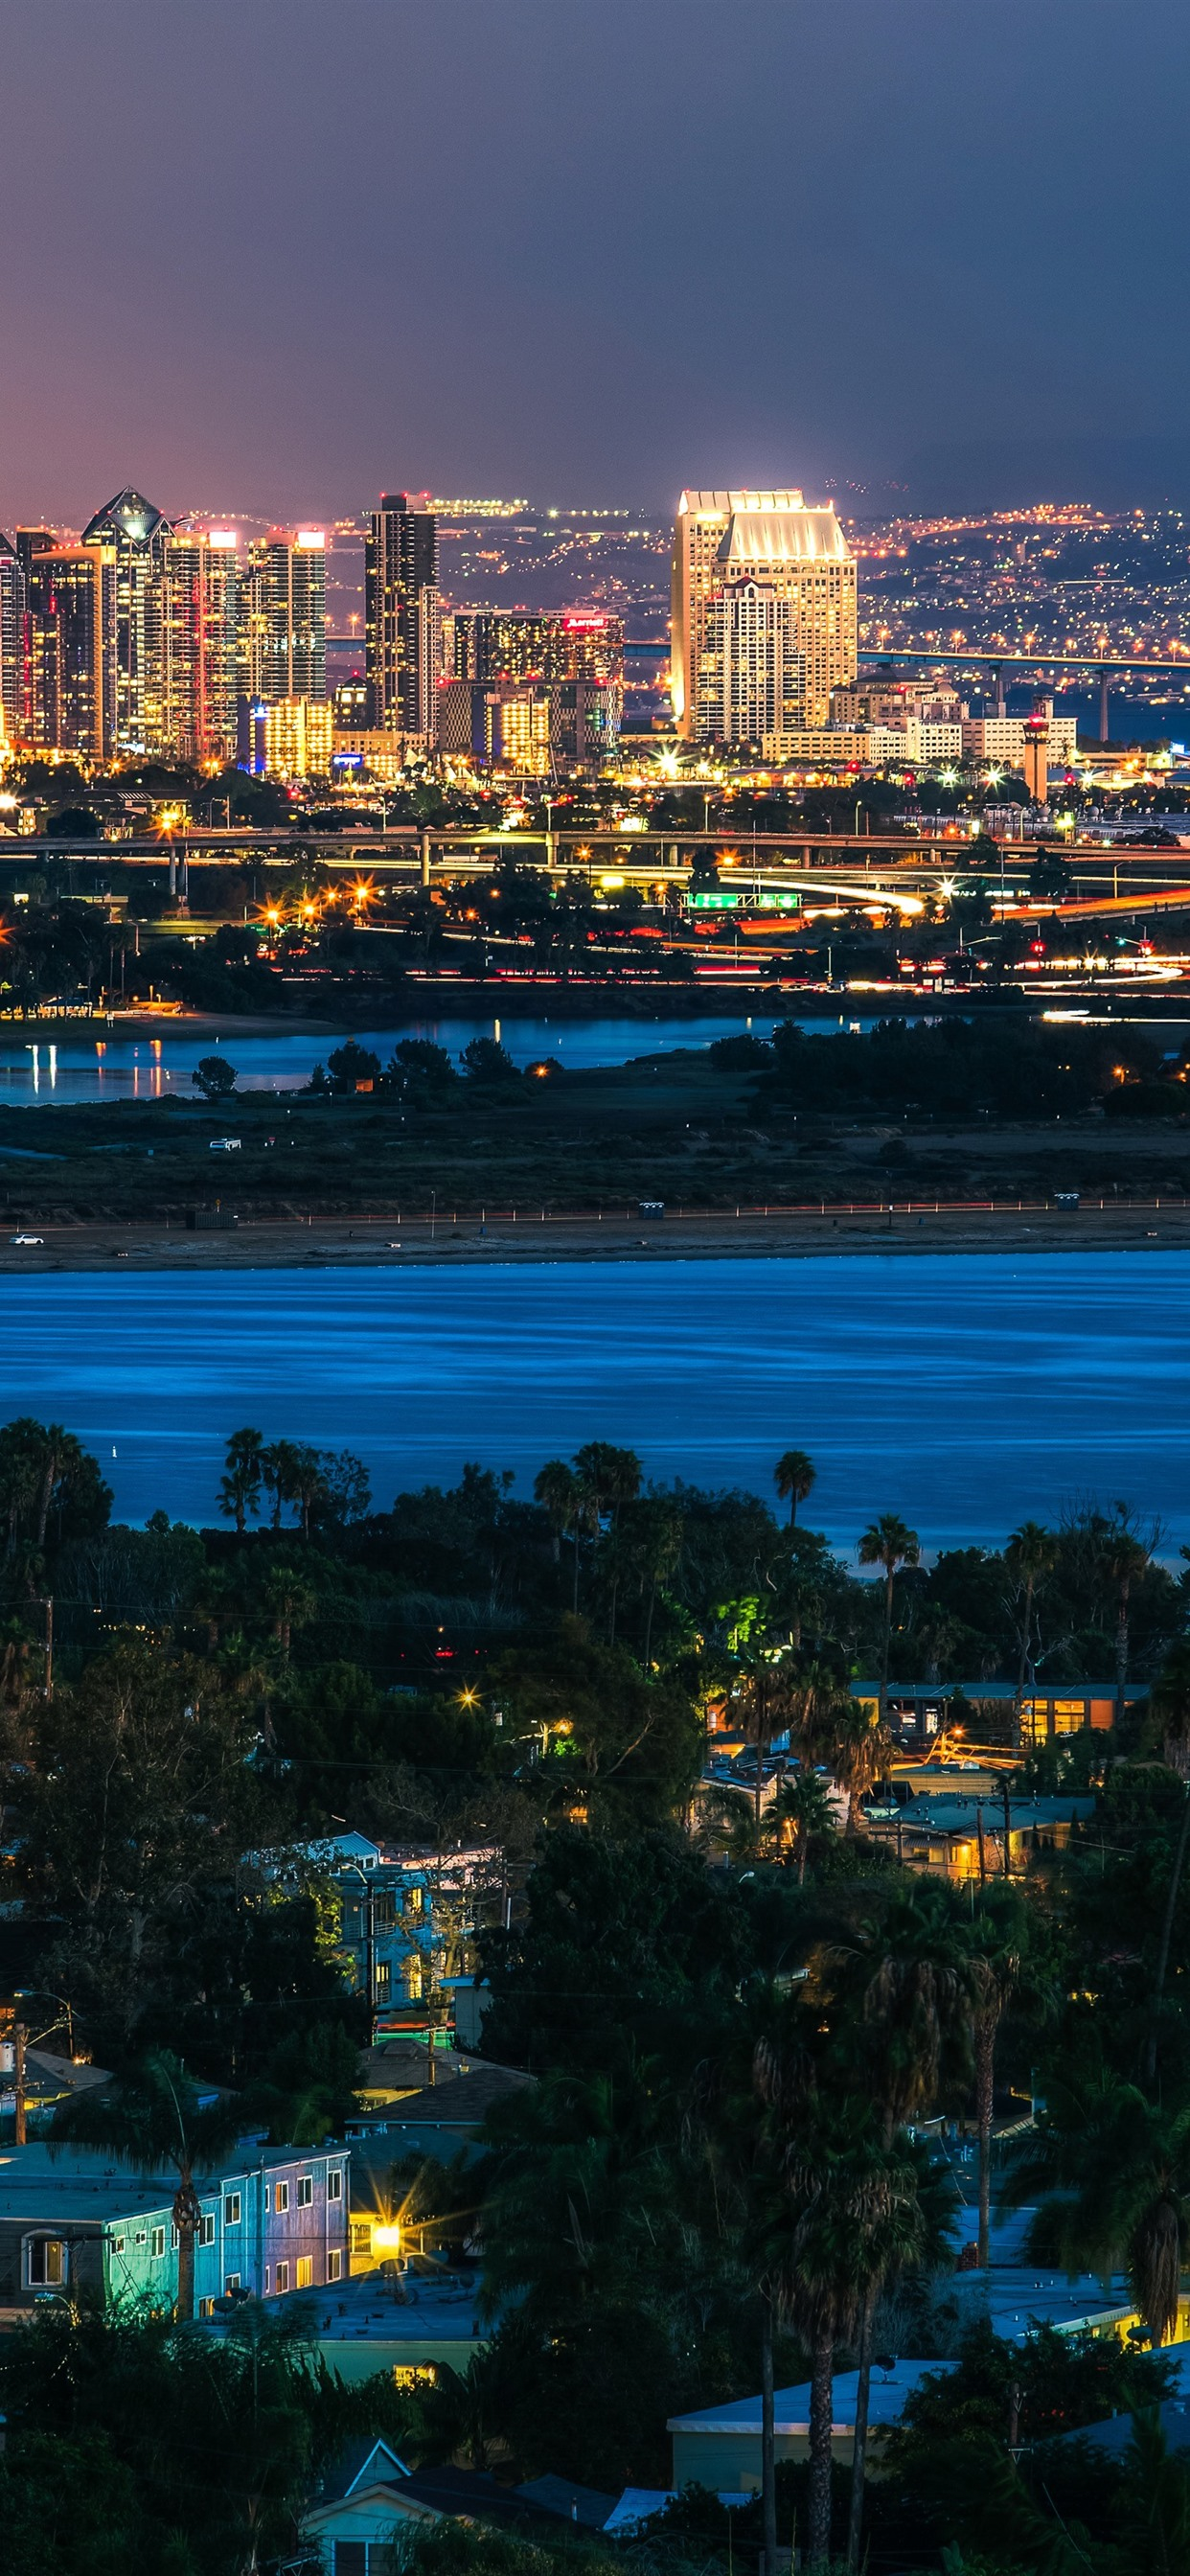 San Diego City Night River Lights Usa 1242x2688 Iphone 11 Pro Xs Max Wallpaper Background Picture Image